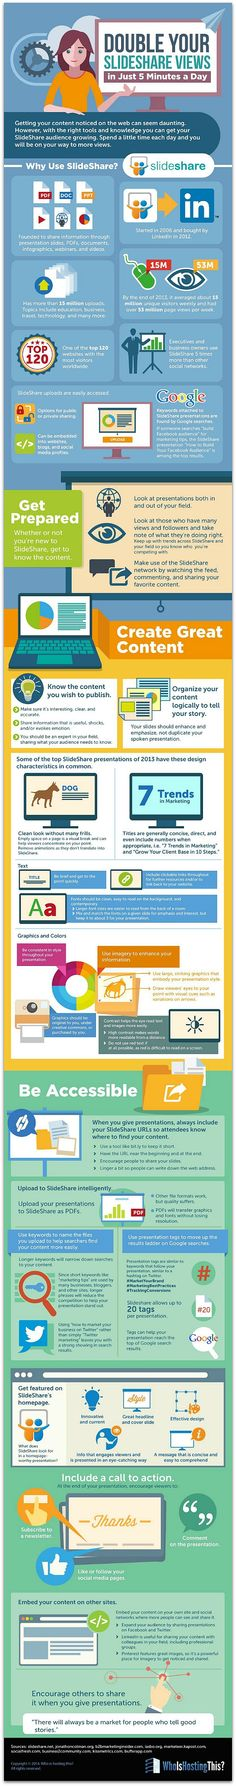 Infographic: How to double your Slideshare views #CrazySocialMediaTips #SocialMediaTips #SocialMediaResources